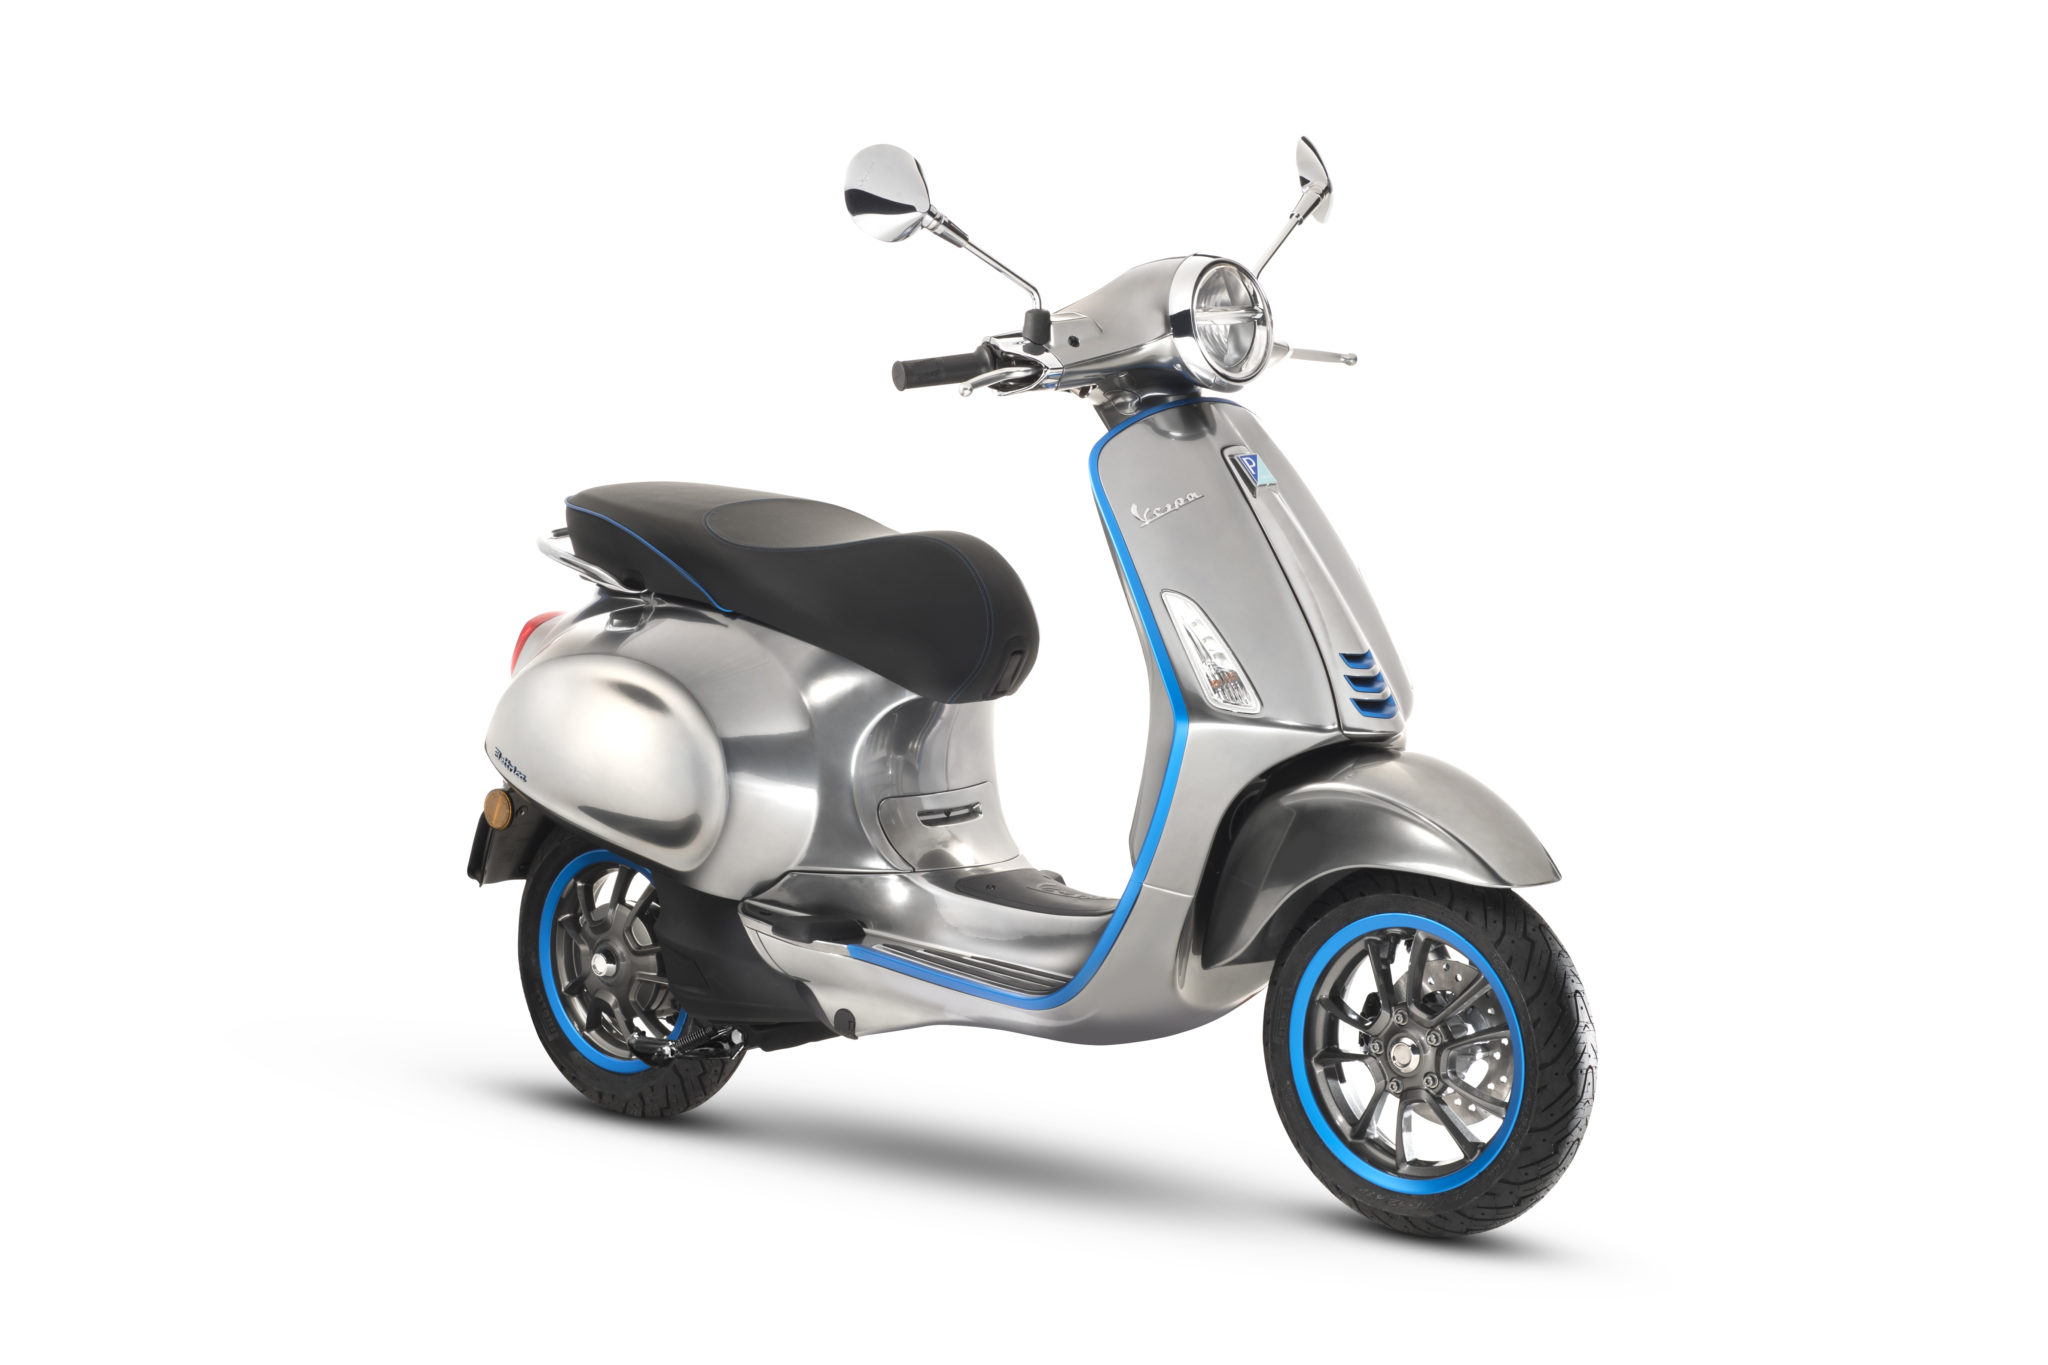 Piaggio confirms Vespa Elletrica to enter production in September